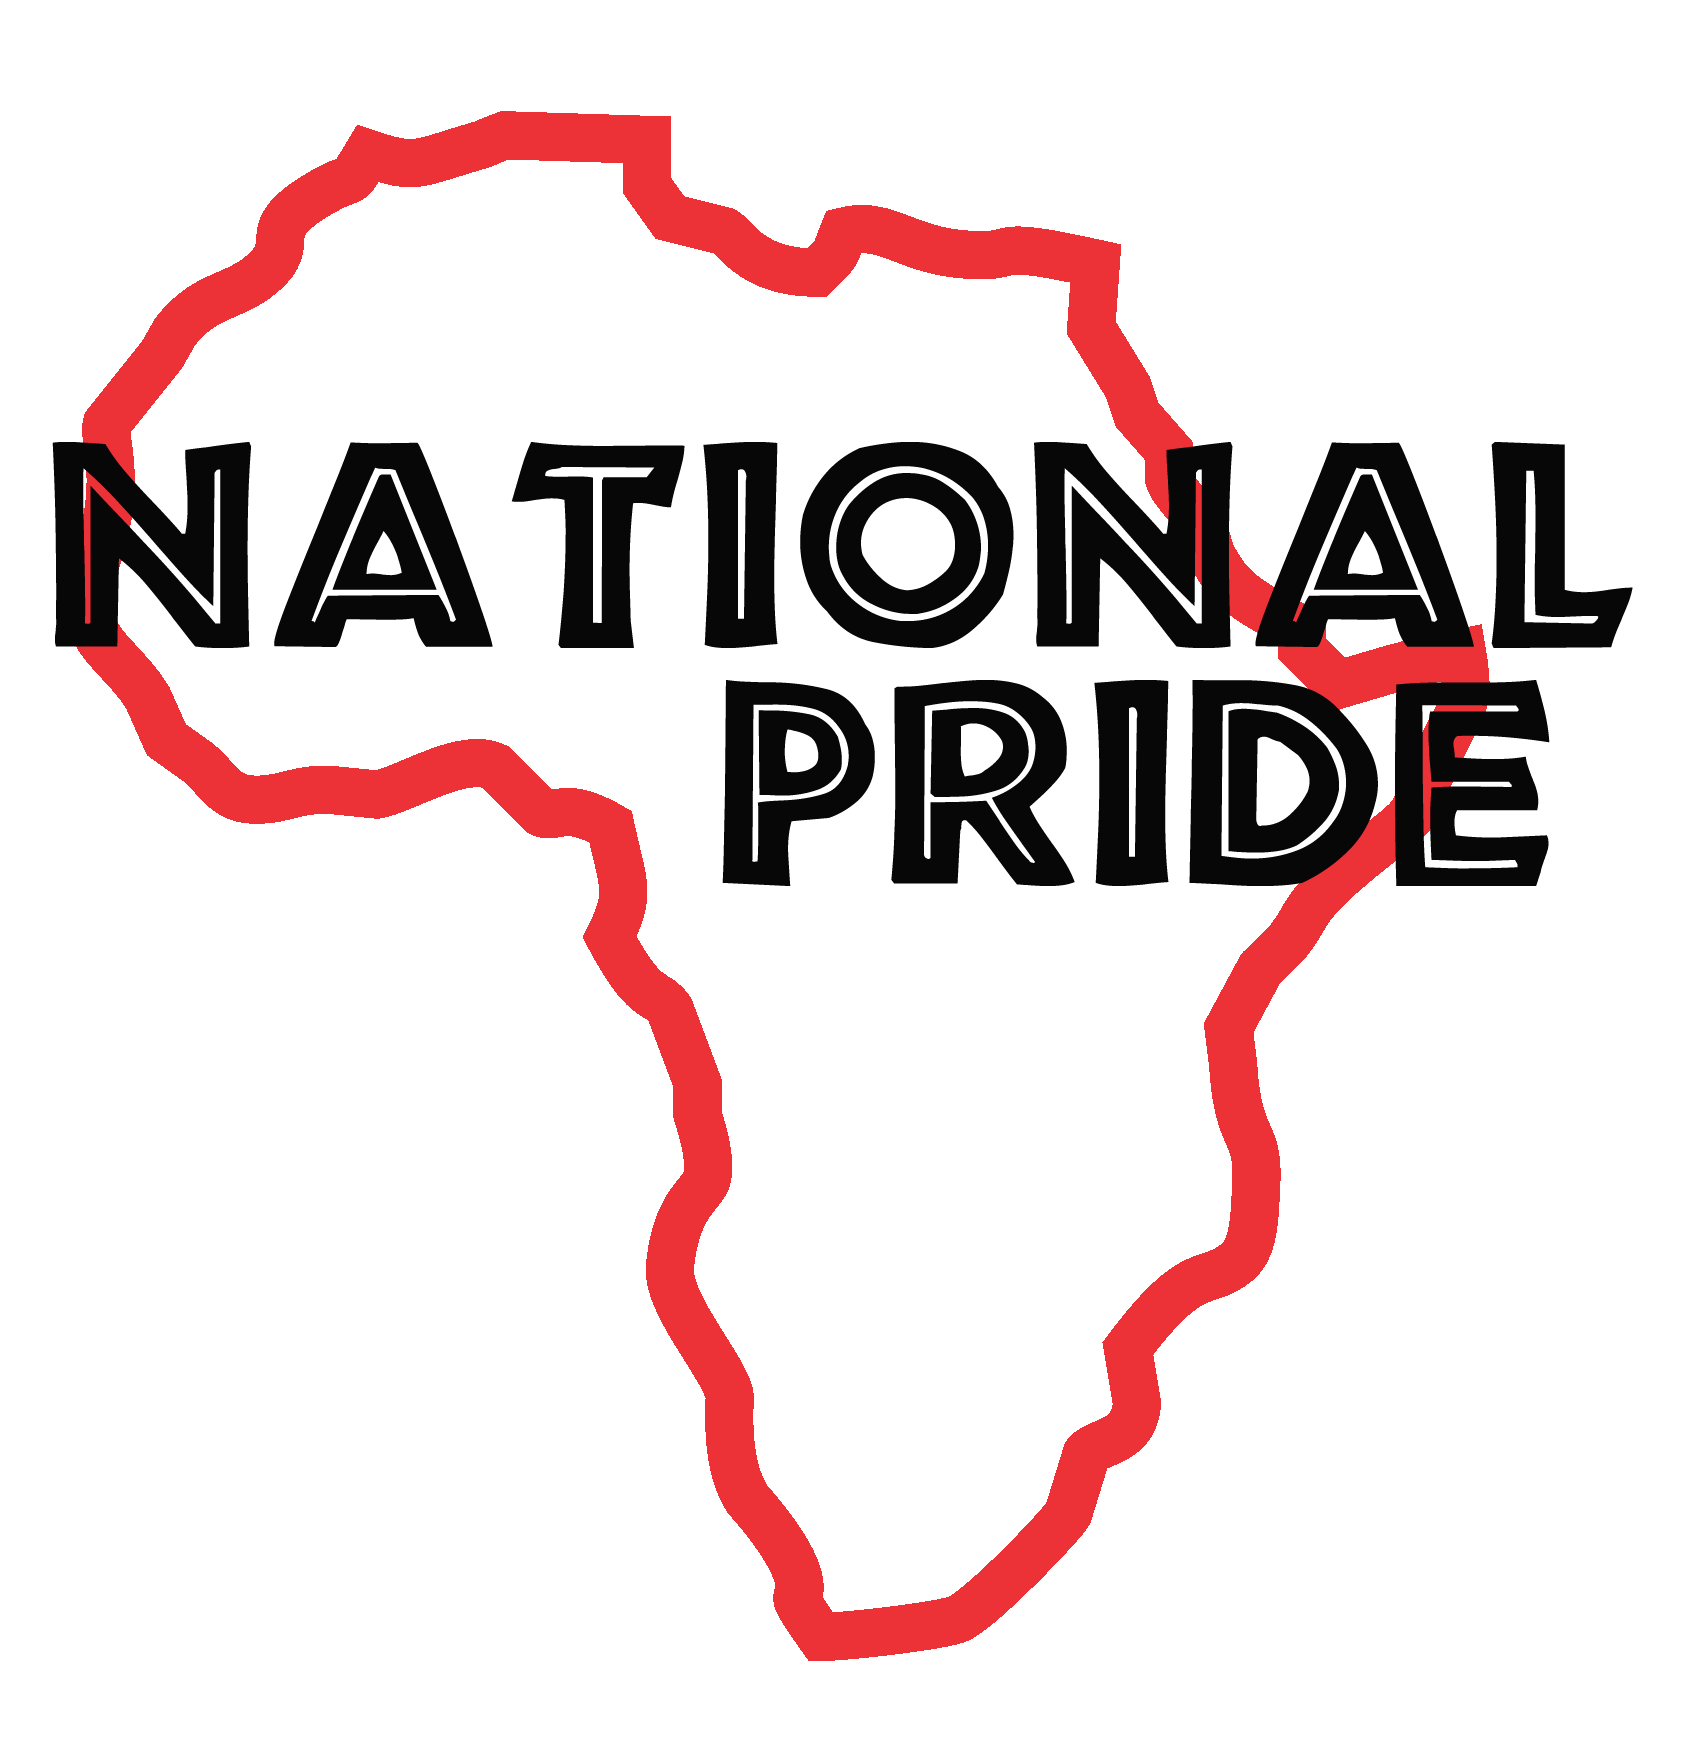 national_pride_logo1.png